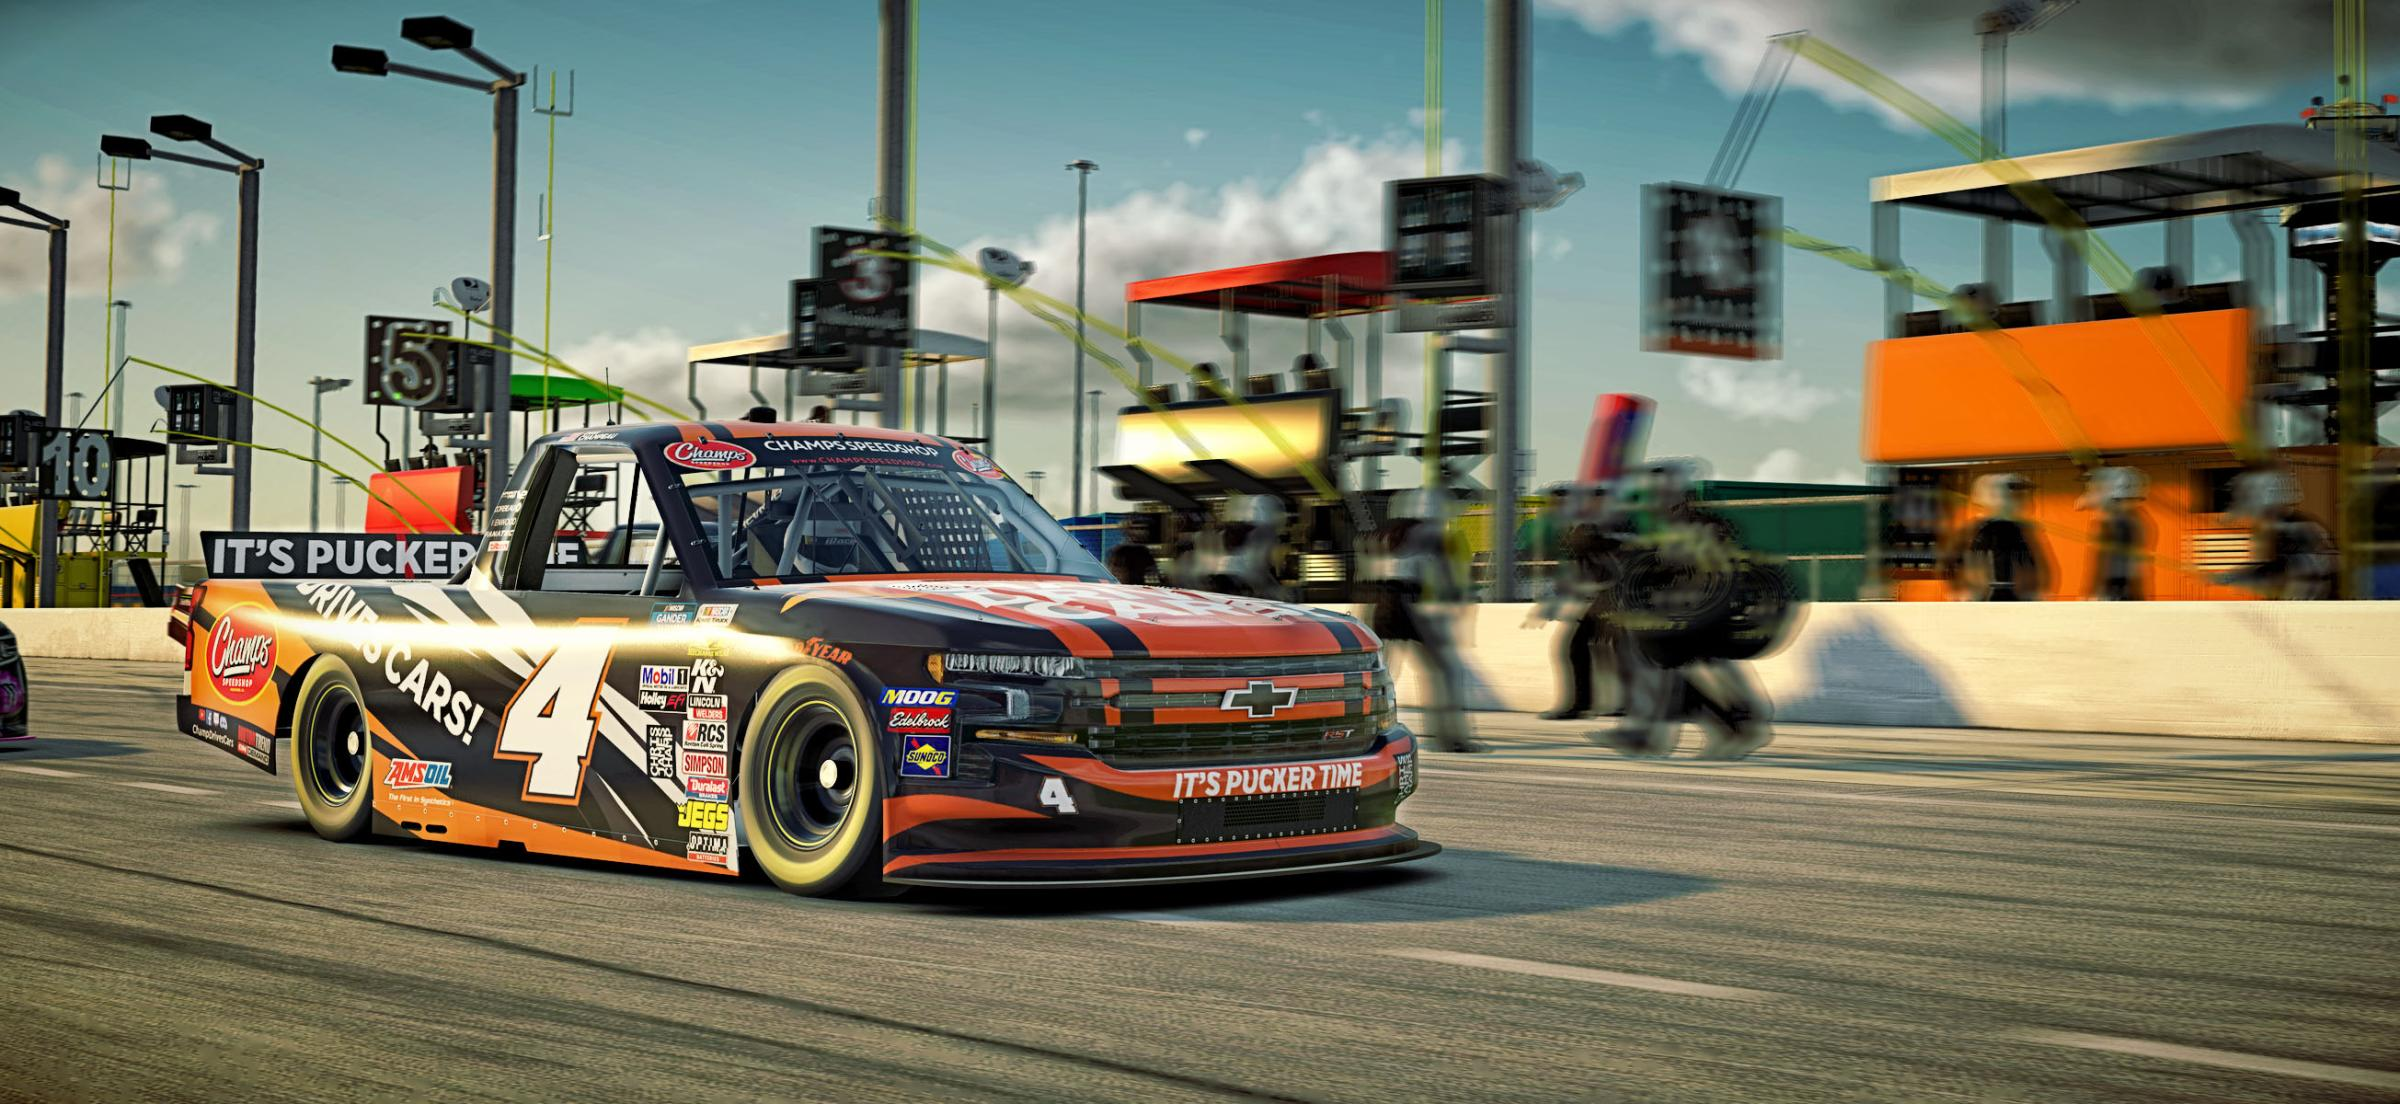 Preview of Champ Drives Cars powered Chevrolet Silverado Truck 2019 by Chris Champeau